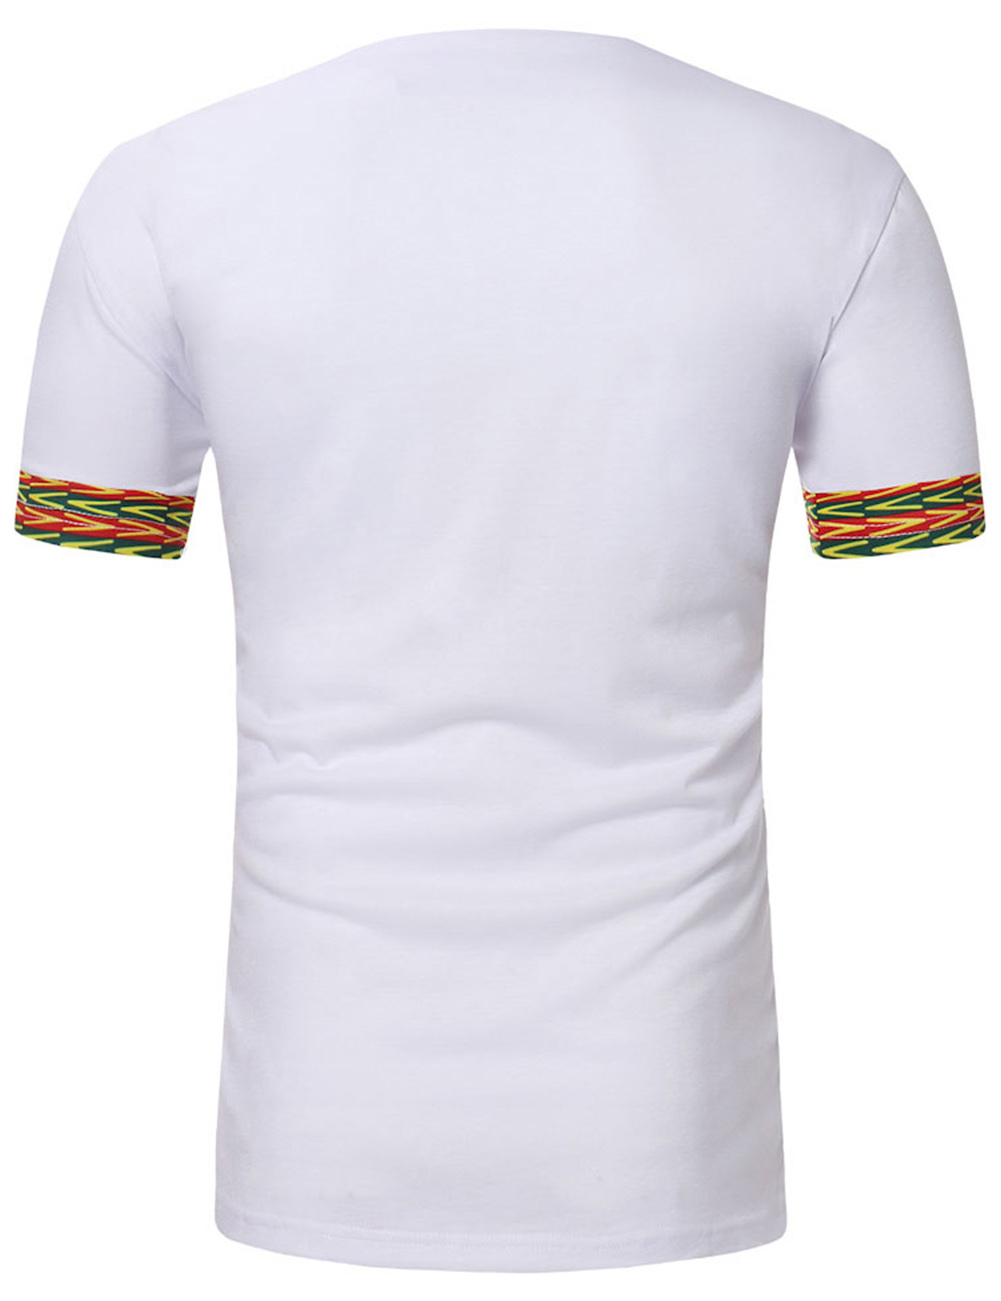 //cdn.affectcloud.com/hexinfashion/upload/imgs/African_Clothing/African_Men_T-shirt/T190098-WH1/T190098-WH1-201911055dc1339305f05.jpg